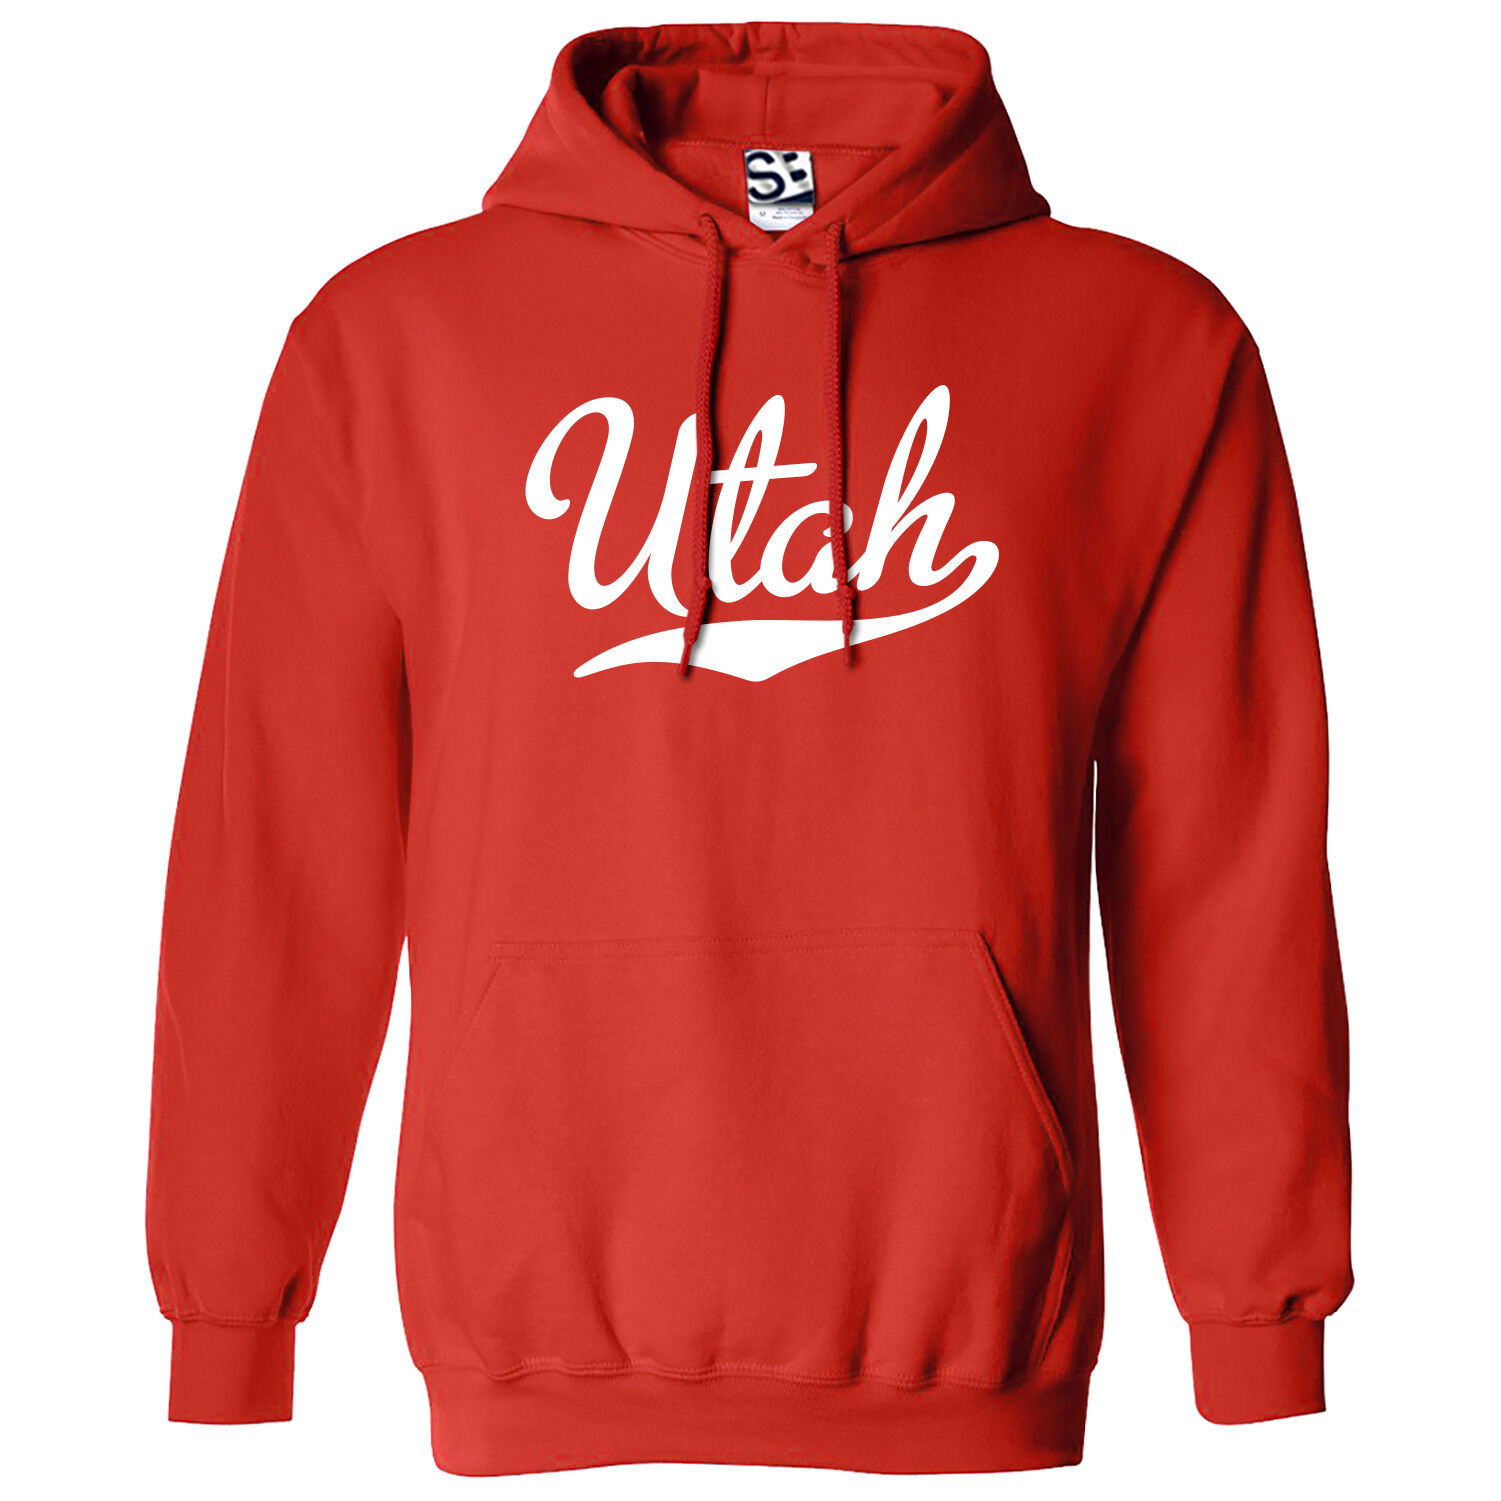 Utah Script & Tail HOODIE - Hooded School Sports Team Sweatshirt - All Farbes